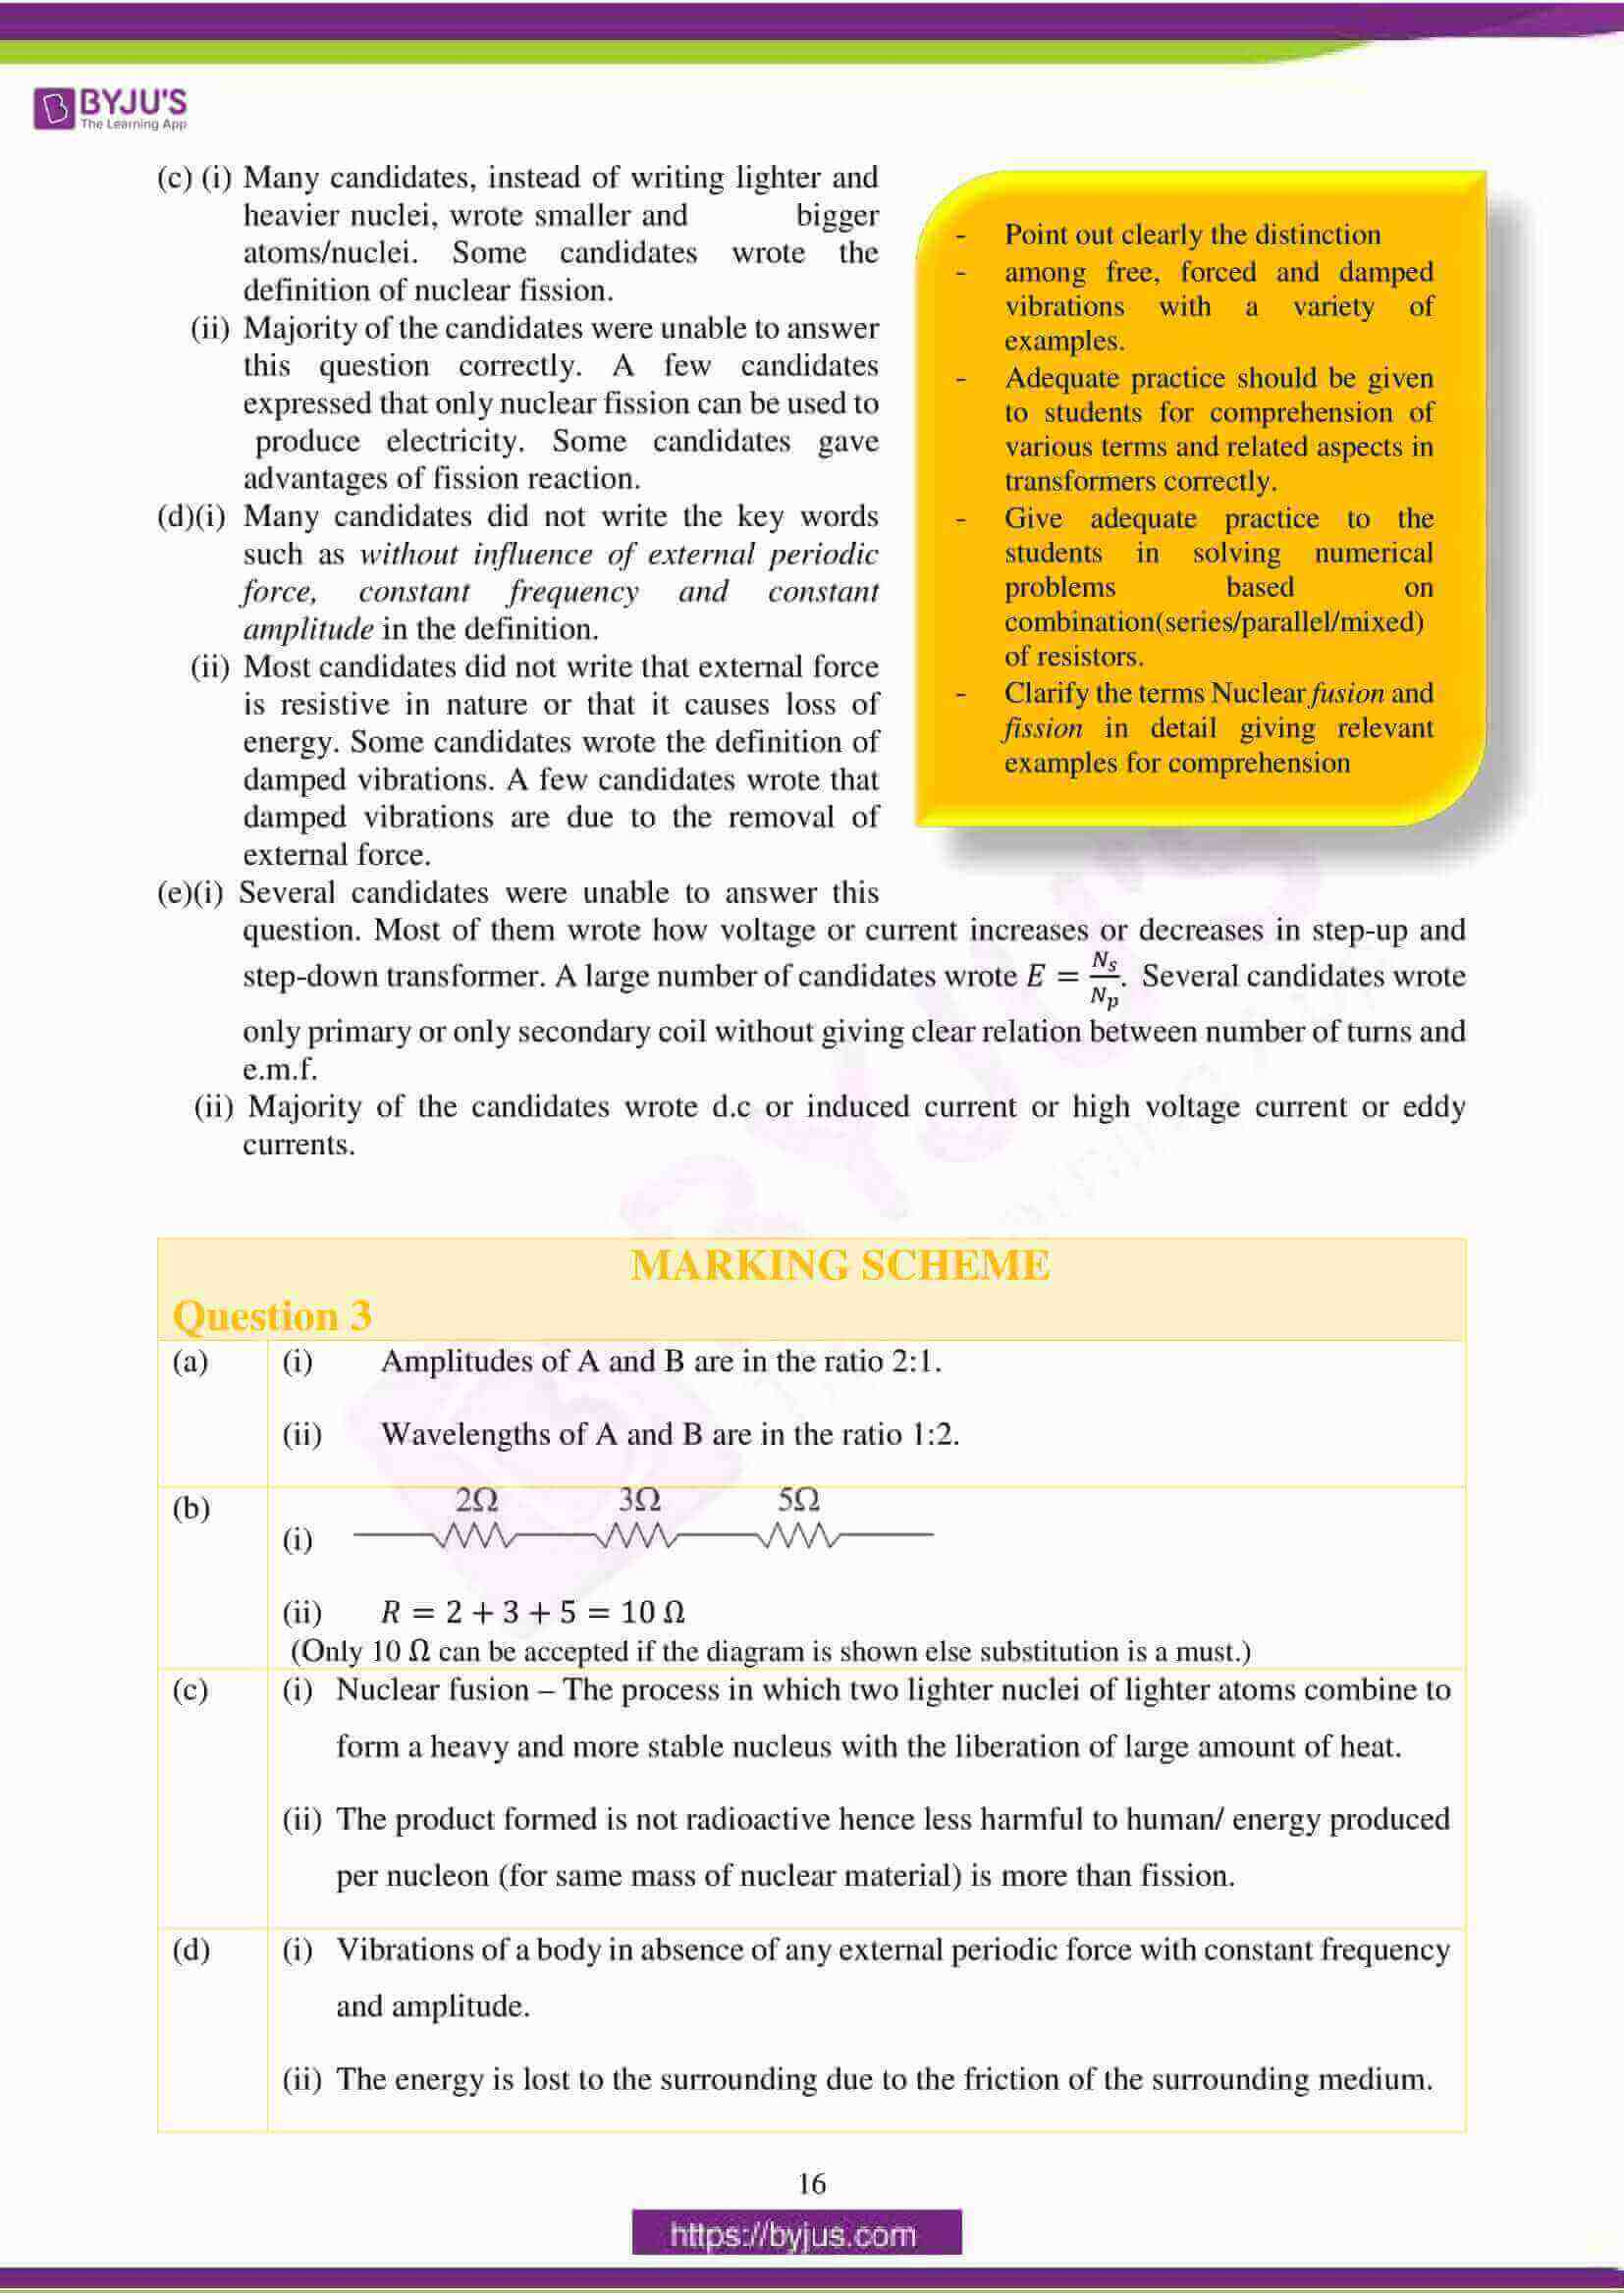 icse class 10 physics question paper solution 2018 07